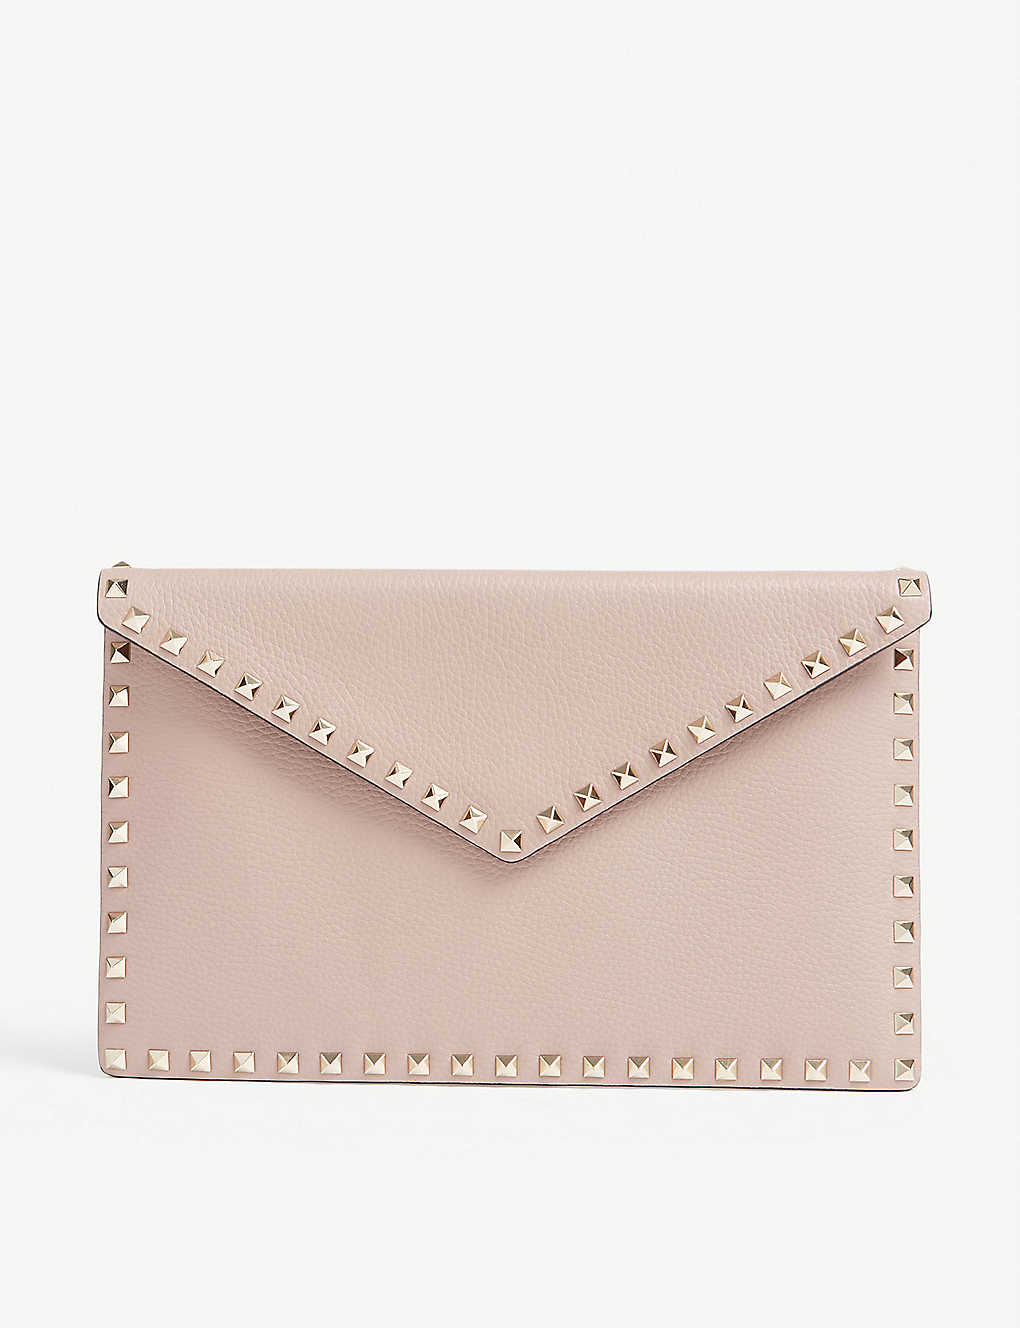 VALENTINO GARAVANI: Rockstud studded leather envelope clutch